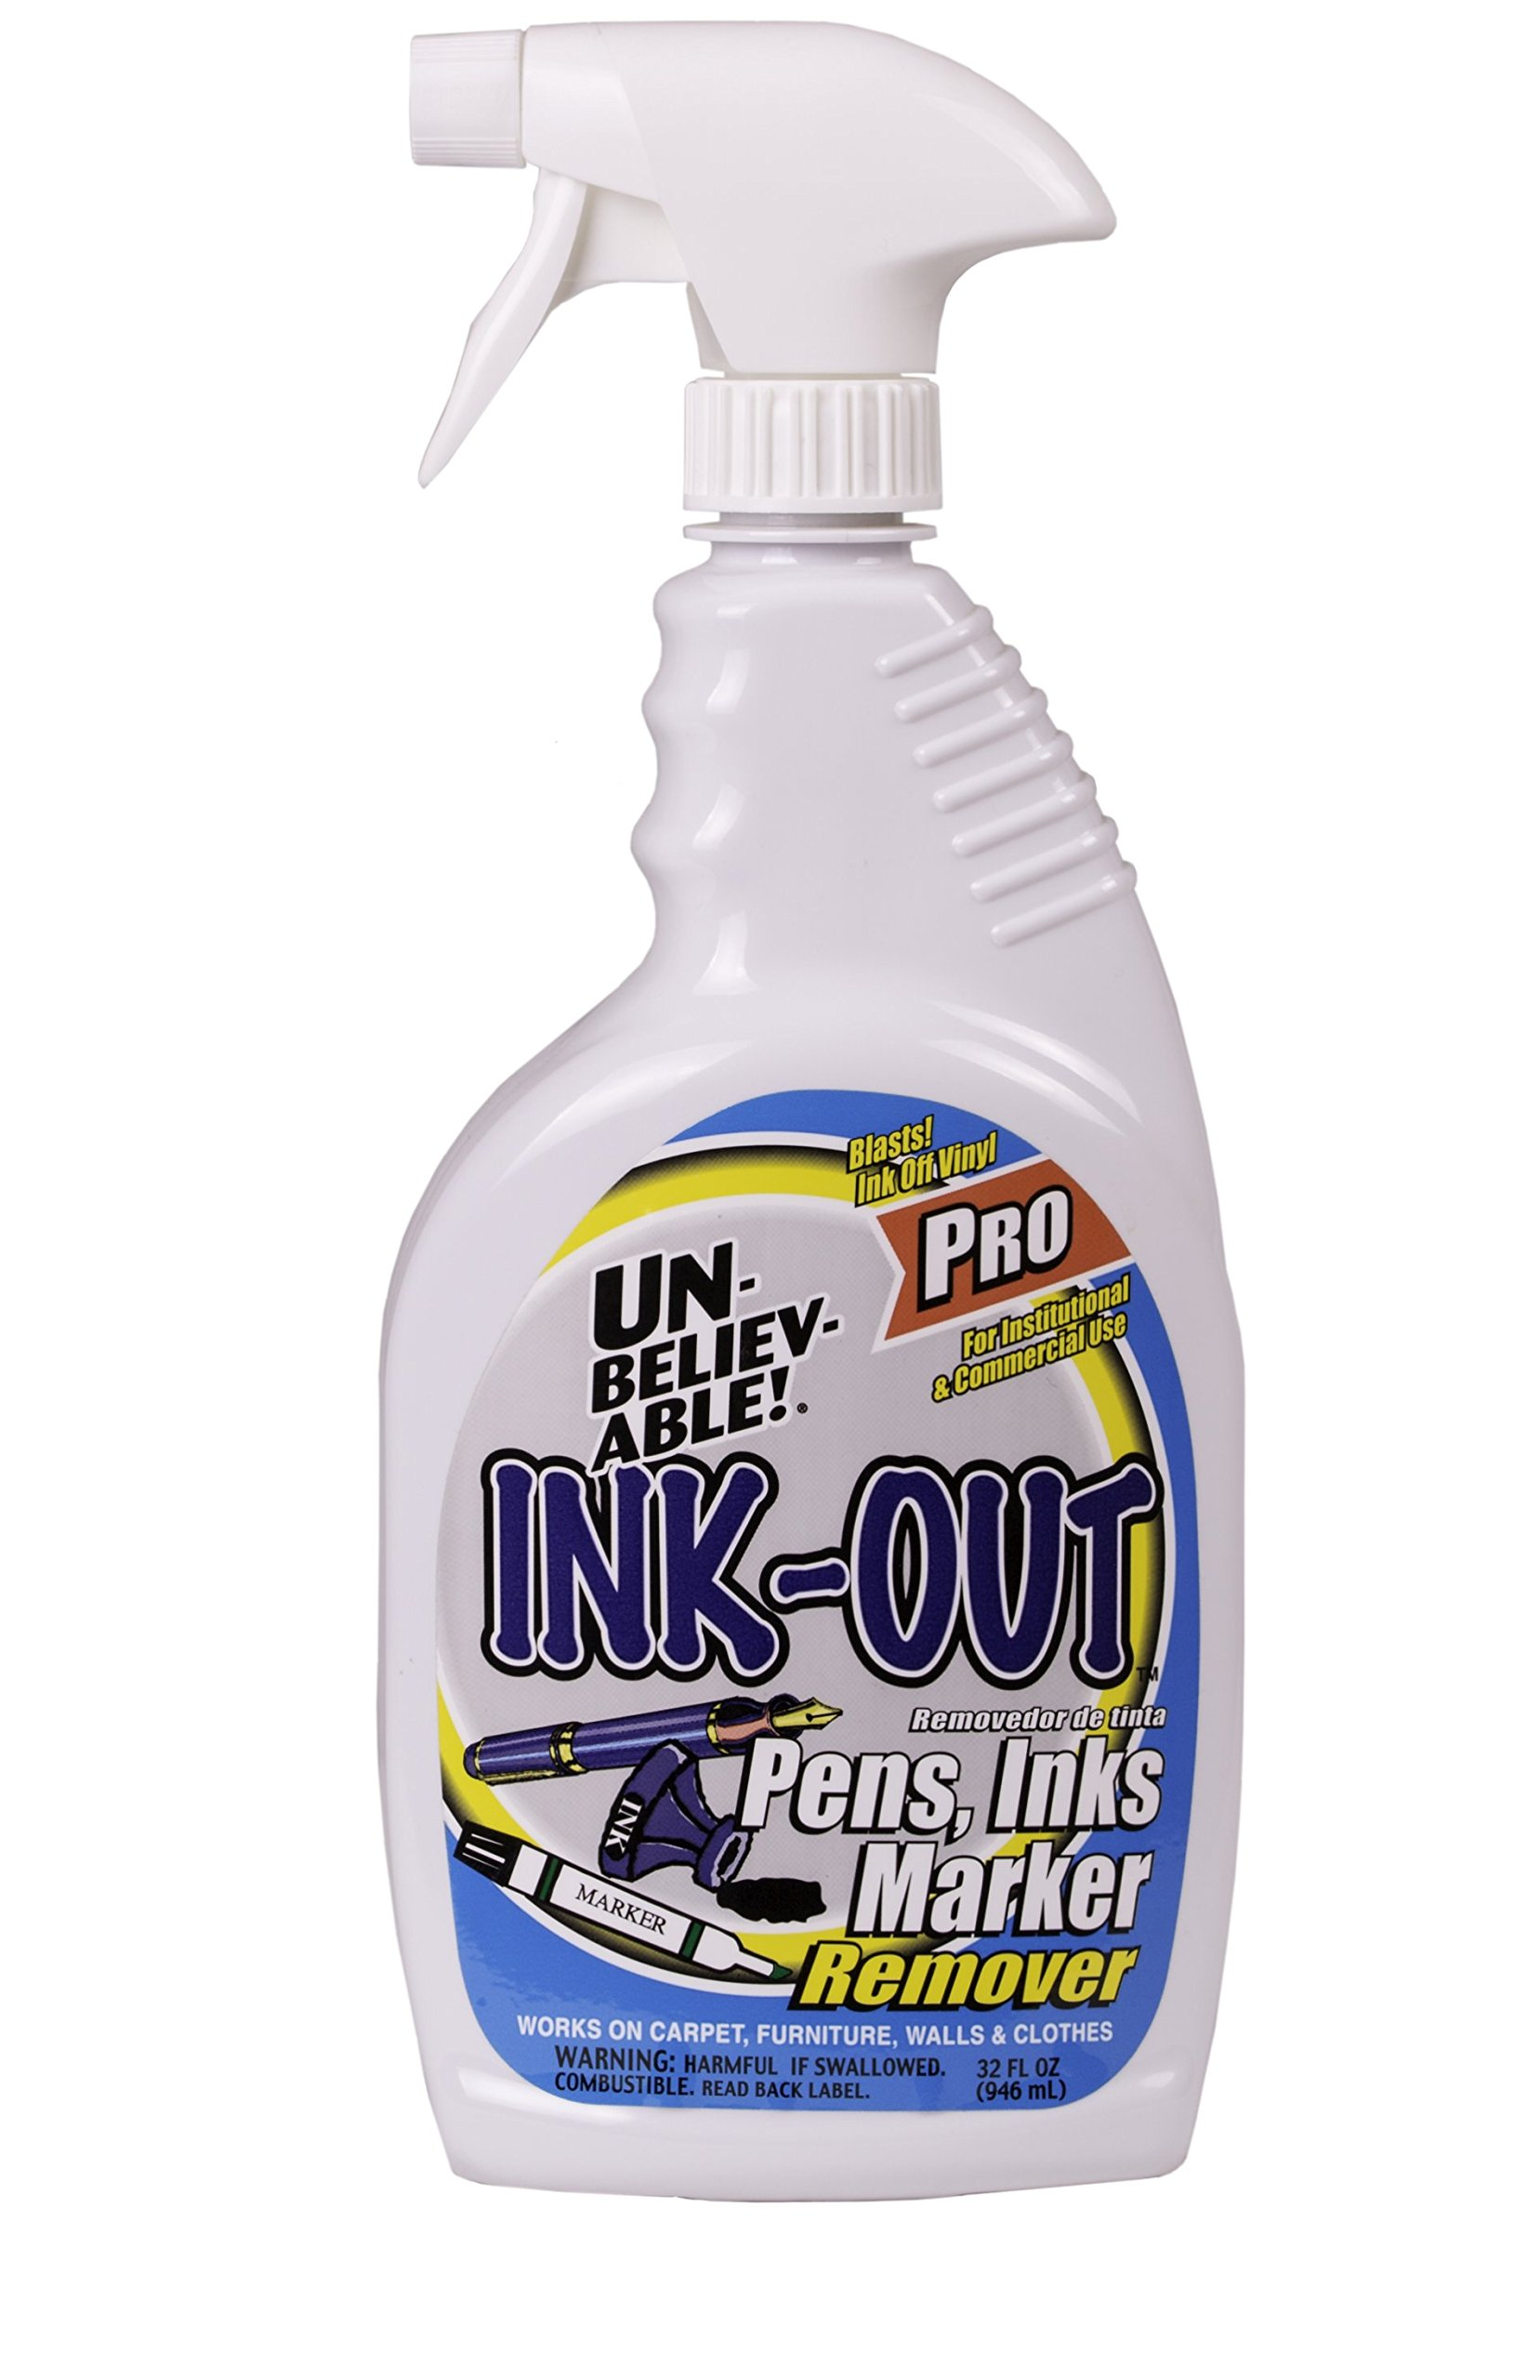 UNBELIEVABLE! INK OUT CASE OF 6-32 OZ BOTTLES by UNBELIEVABLE (Image #2)